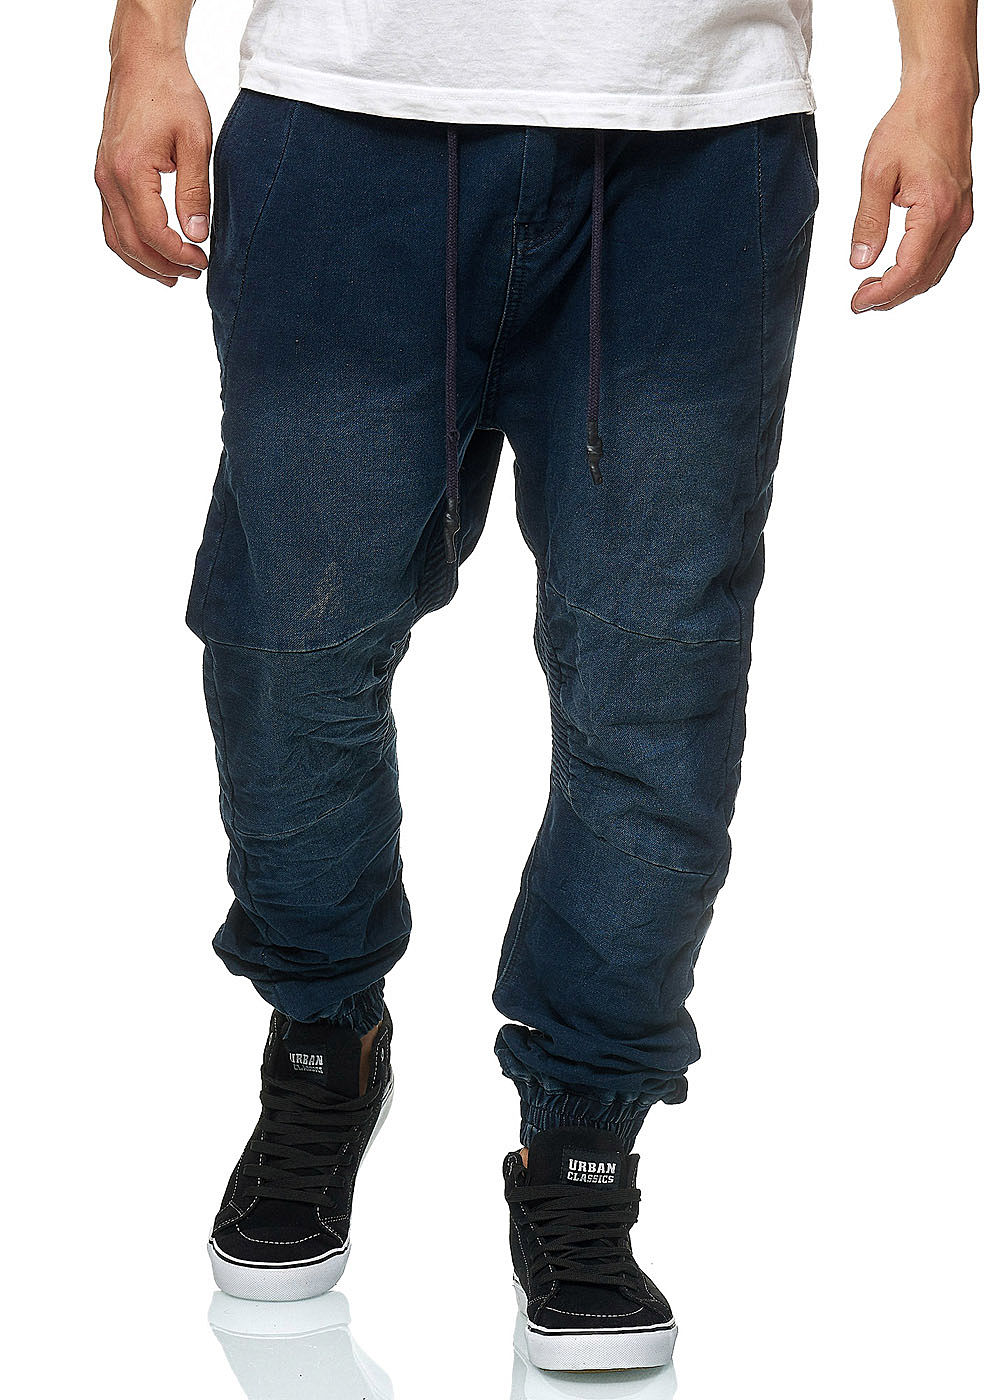 Hailys Herren Relaxed Fit Jeans Hose Sweat Pants 4-Pockets dunkel blau denim - Art.-Nr.: 18124187